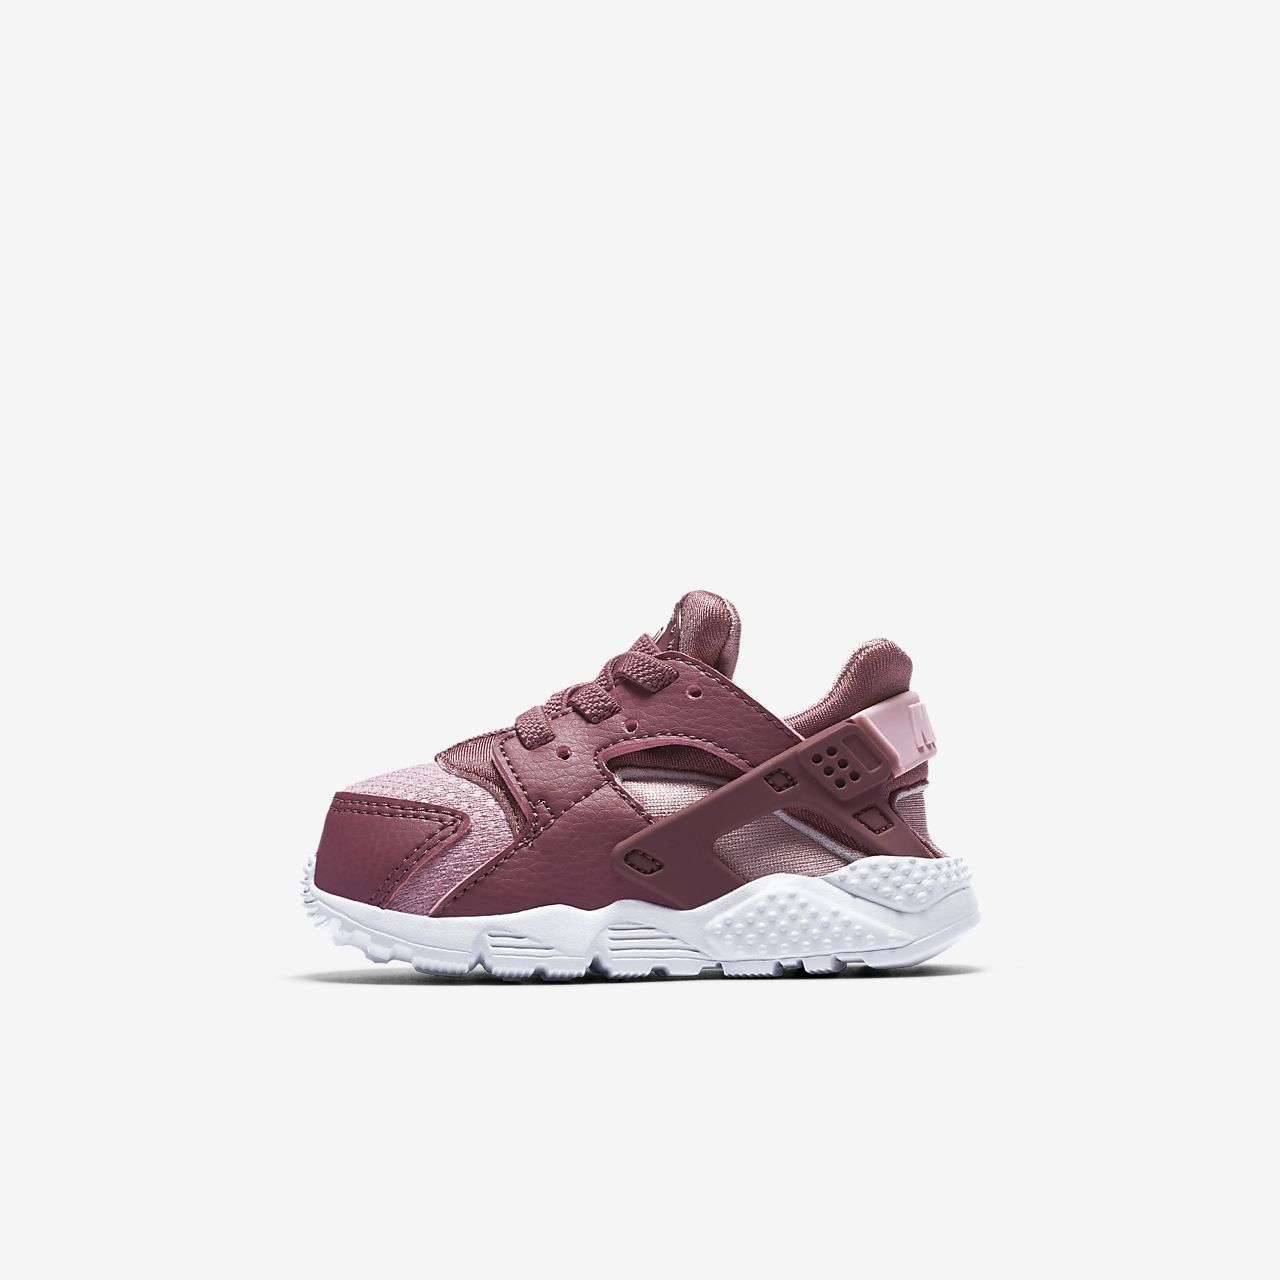 Nike Huarache InfantToddler Shoe | Baby girl shoes, Baby